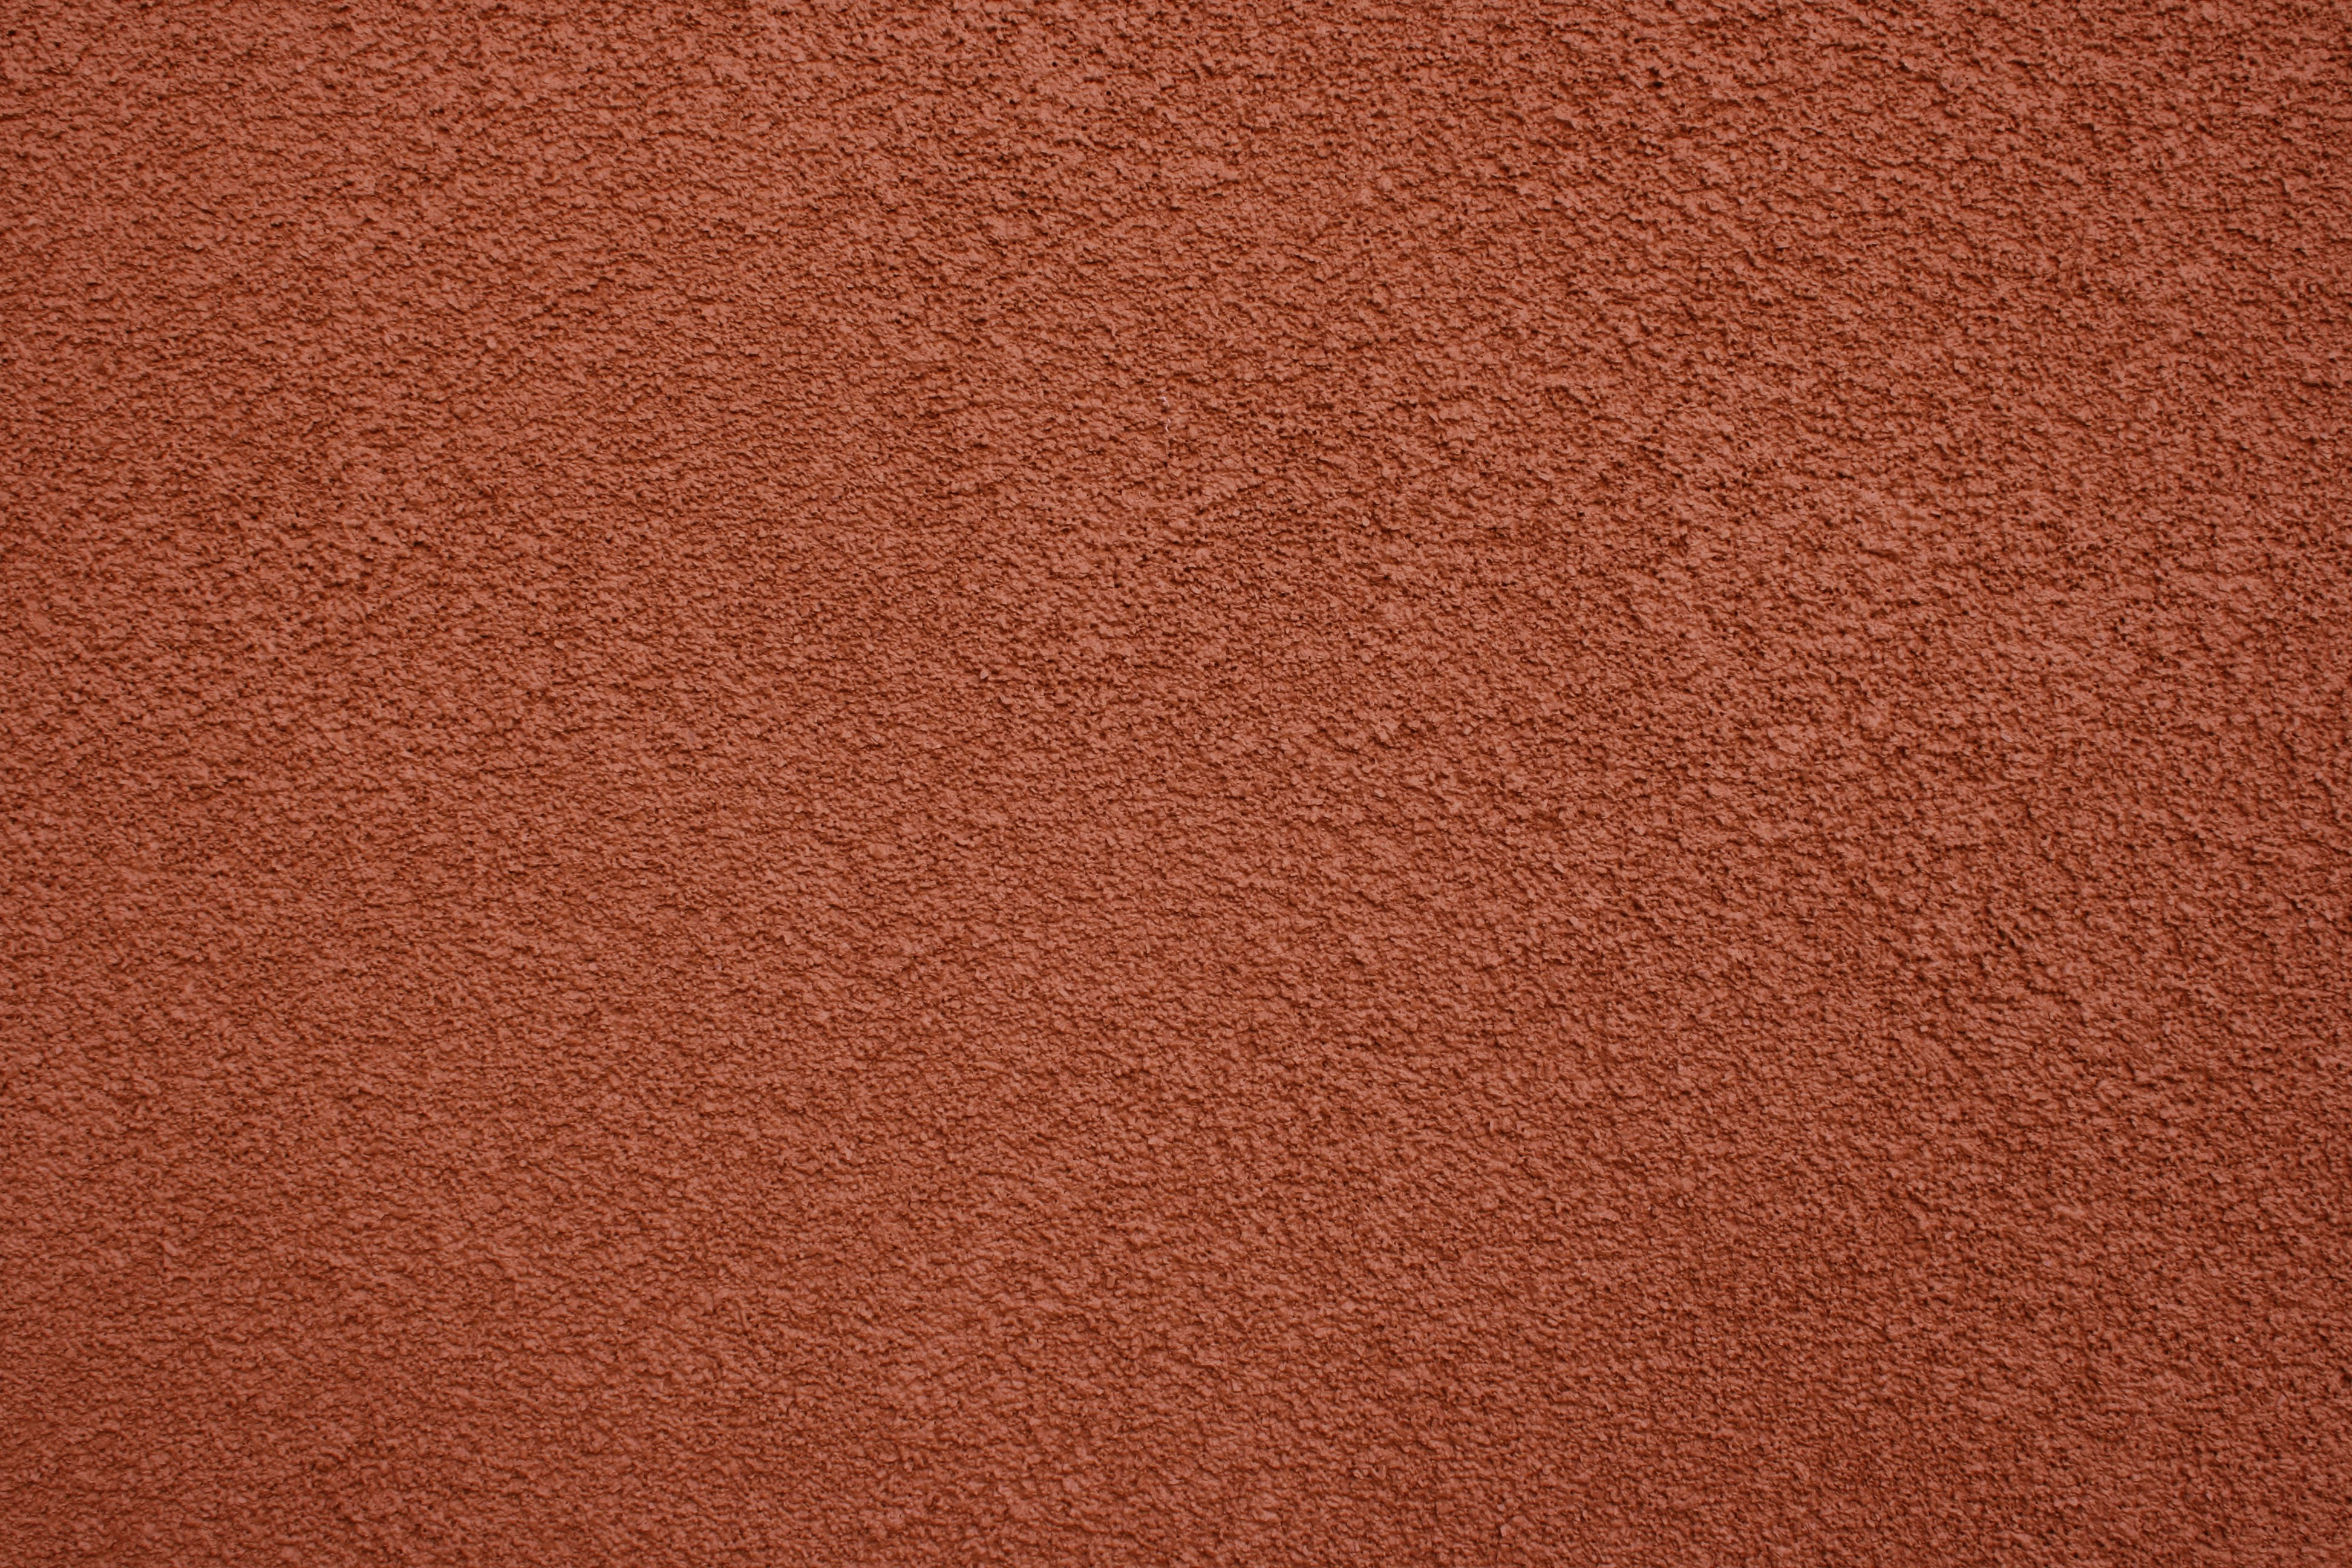 Terra Cotta Stucco Wall Texture Picture Free Photograph